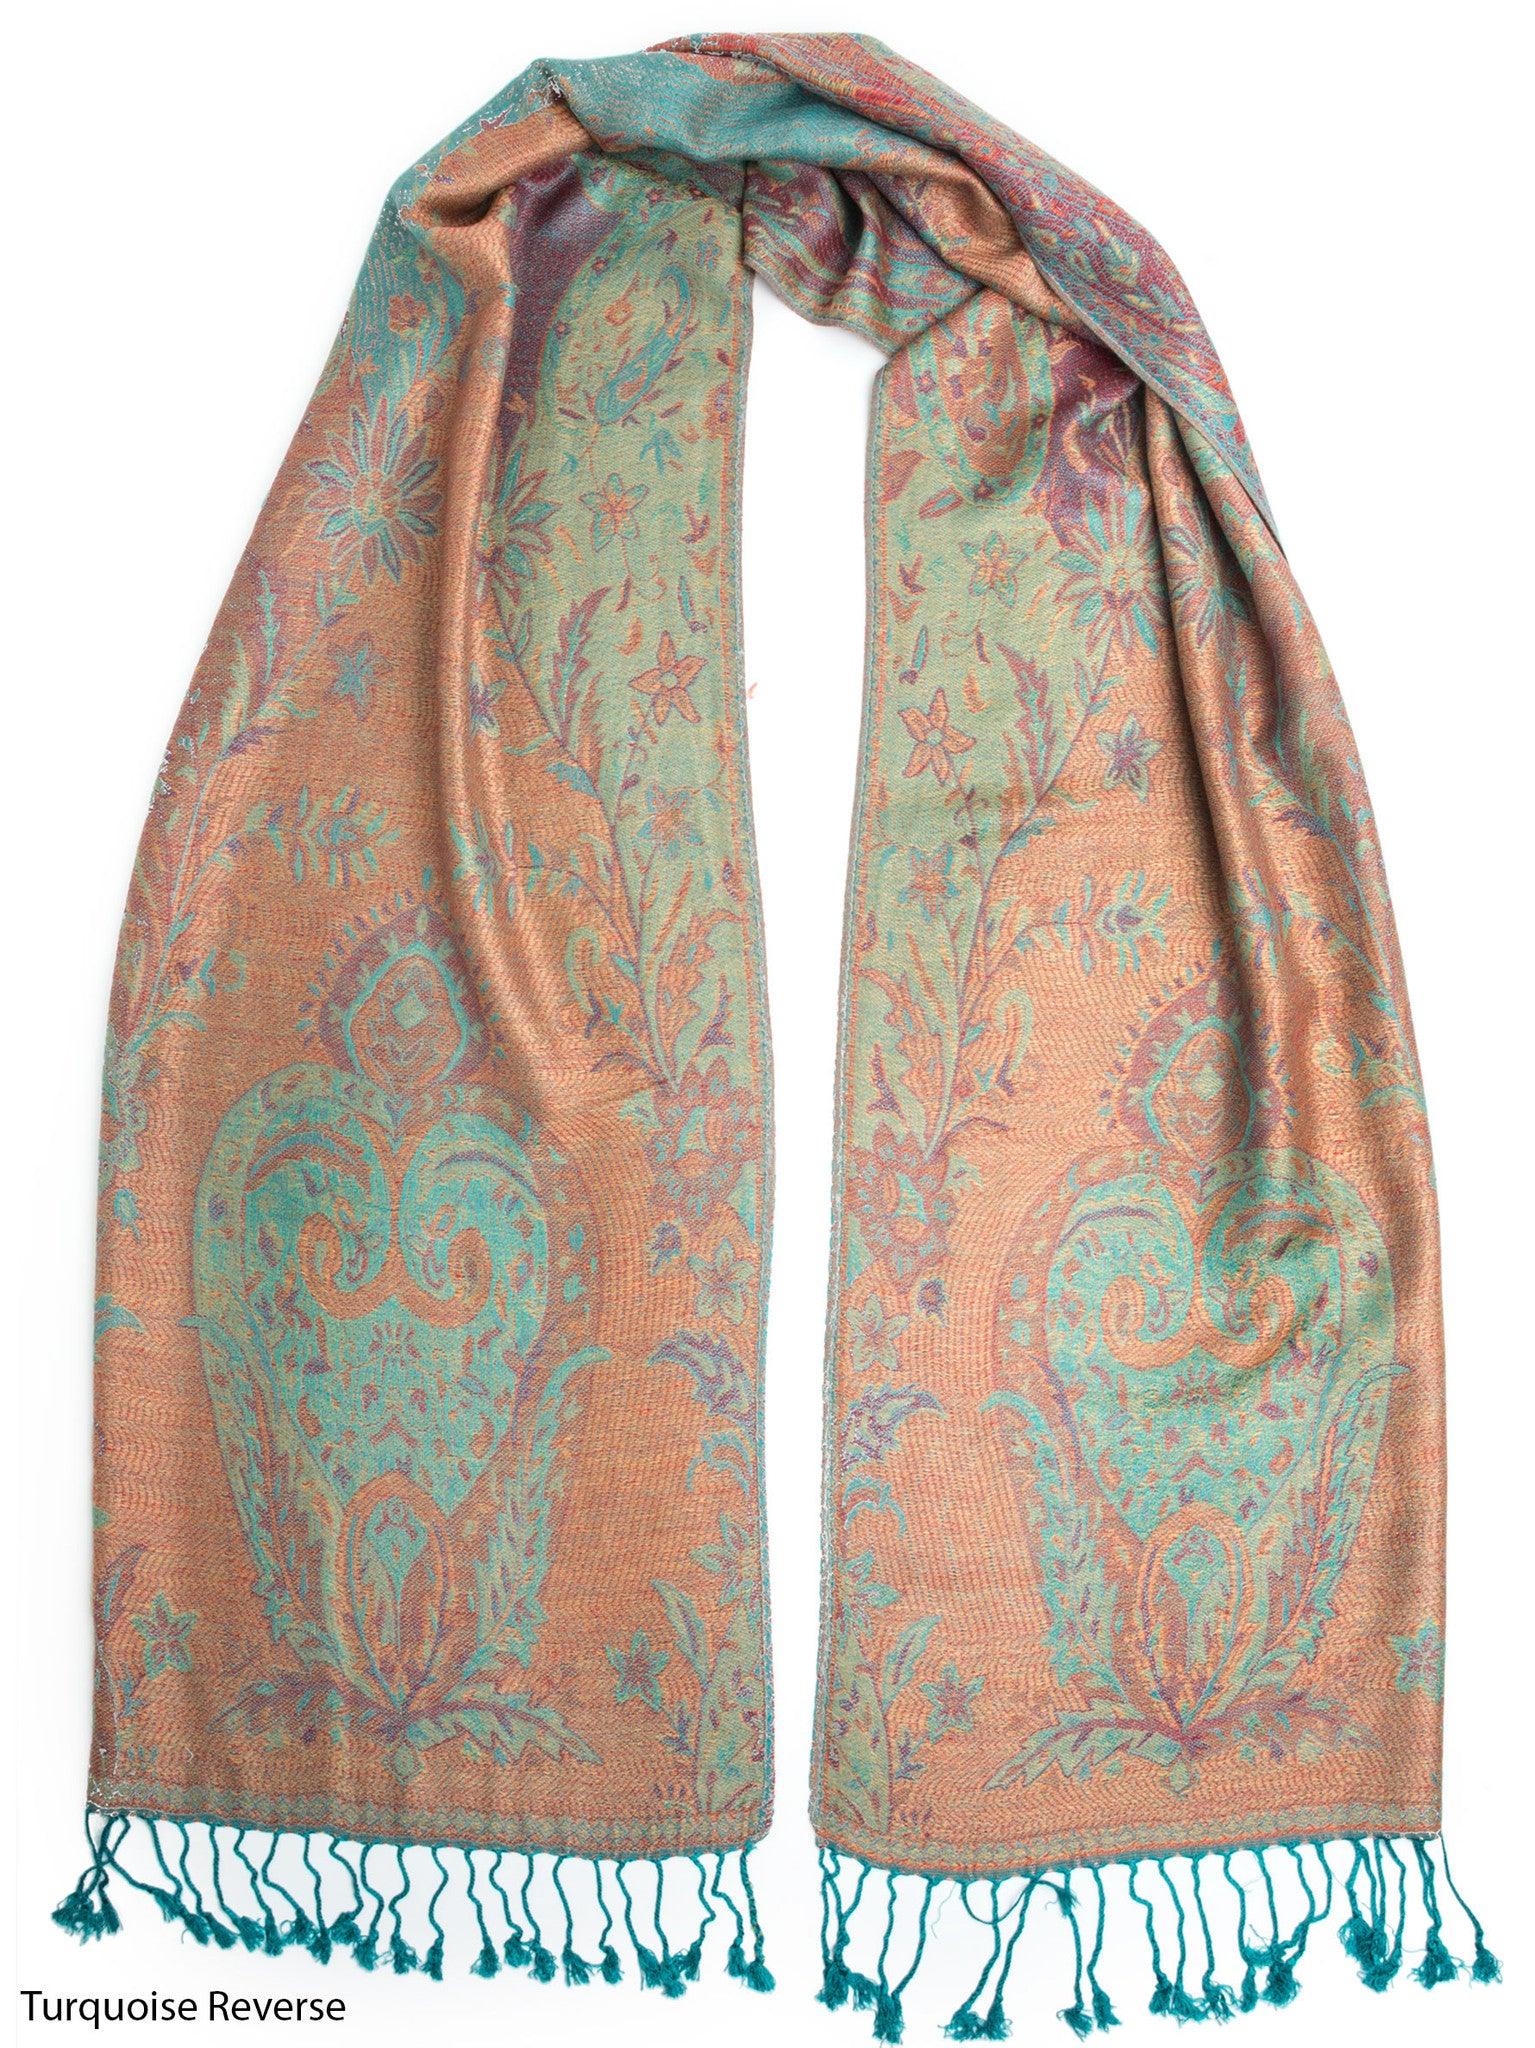 Scarves - Ramaya Scarf, Reversible Pashmina Indian Paisley Traditional Jacquard Scarf -() Bohomonde  - 4